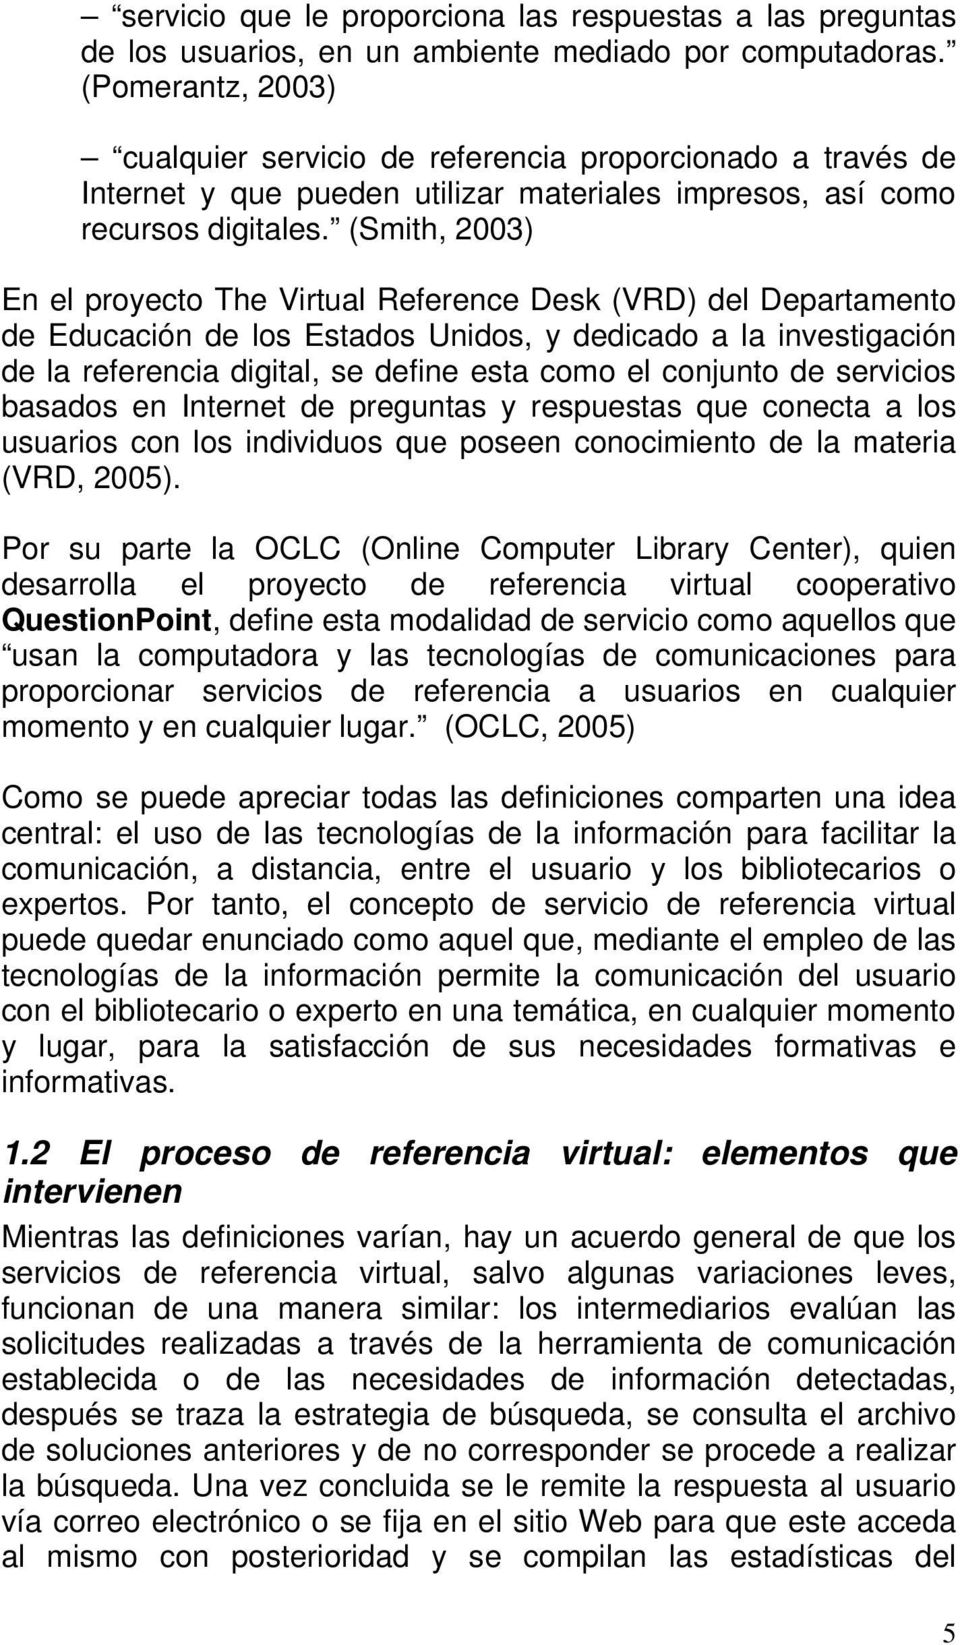 (Smith, 2003) En el proyecto The Virtual Reference Desk (VRD) del Departamento de Educación de los Estados Unidos, y dedicado a la investigación de la referencia digital, se define esta como el